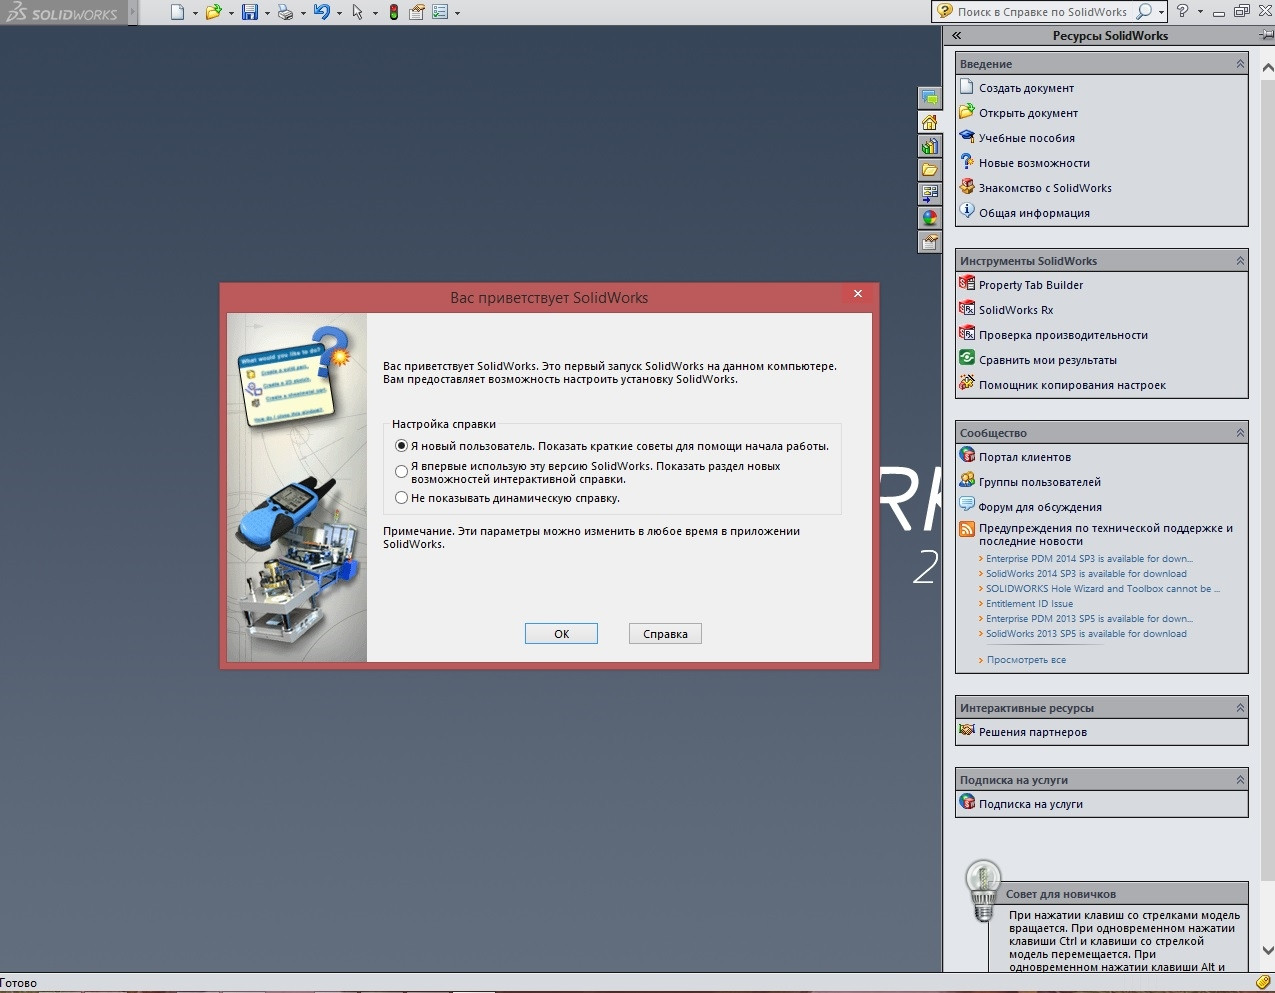 SolidWorks Premium Edition 2014 SP3.0 [x86] [Shareware]